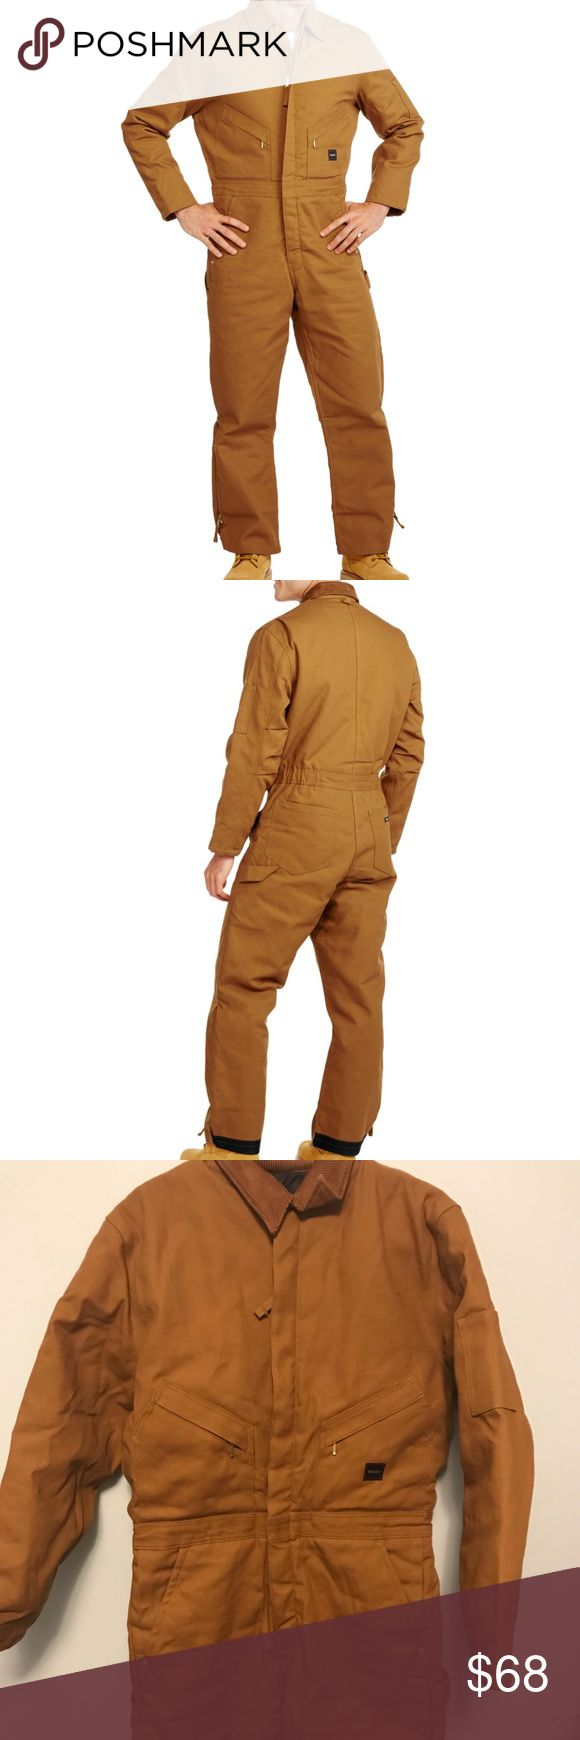 Walls Men's Insulated Duck Coverall Walls Men's Insulated Duck Coverall: Features a durable duck shell with a water-repellent finish. It also has taffeta lining and a fiberfill insulation. The handy storage pocket on the left chest has a hook and loop closure so you can keep small items secure. This Walls coverall also comes with two zippered chest pockets, as well as front swing pockets and two back patch pockets. The durable design includes triple-needle stitching on all construction…